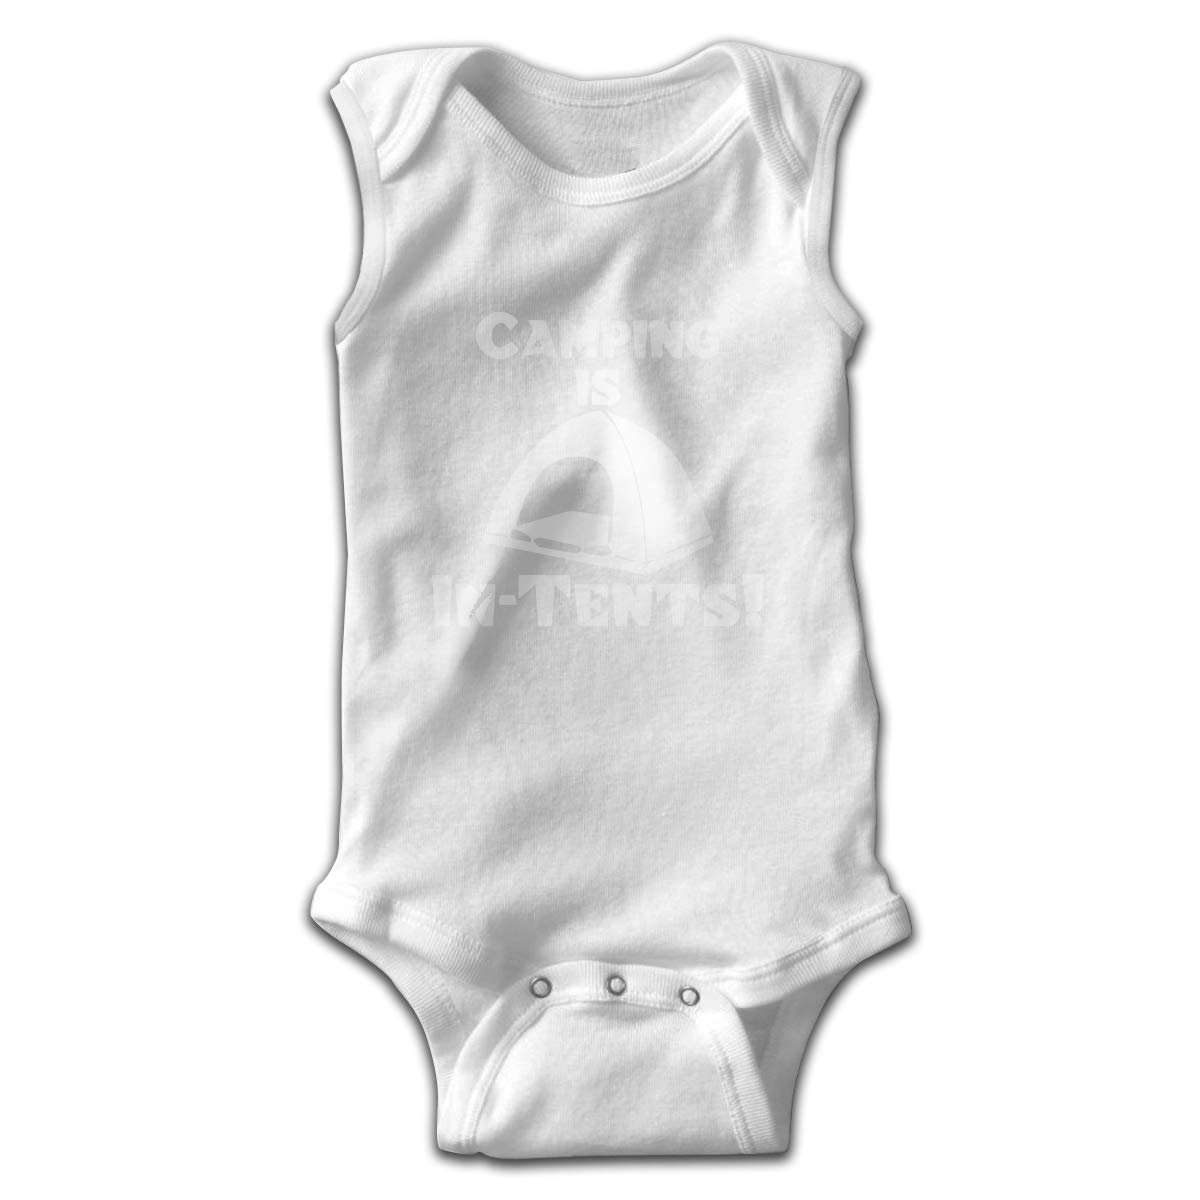 Camping is in Tents Newborn Baby No Sleeve Bodysuit Romper Infant Summer Clothing Black